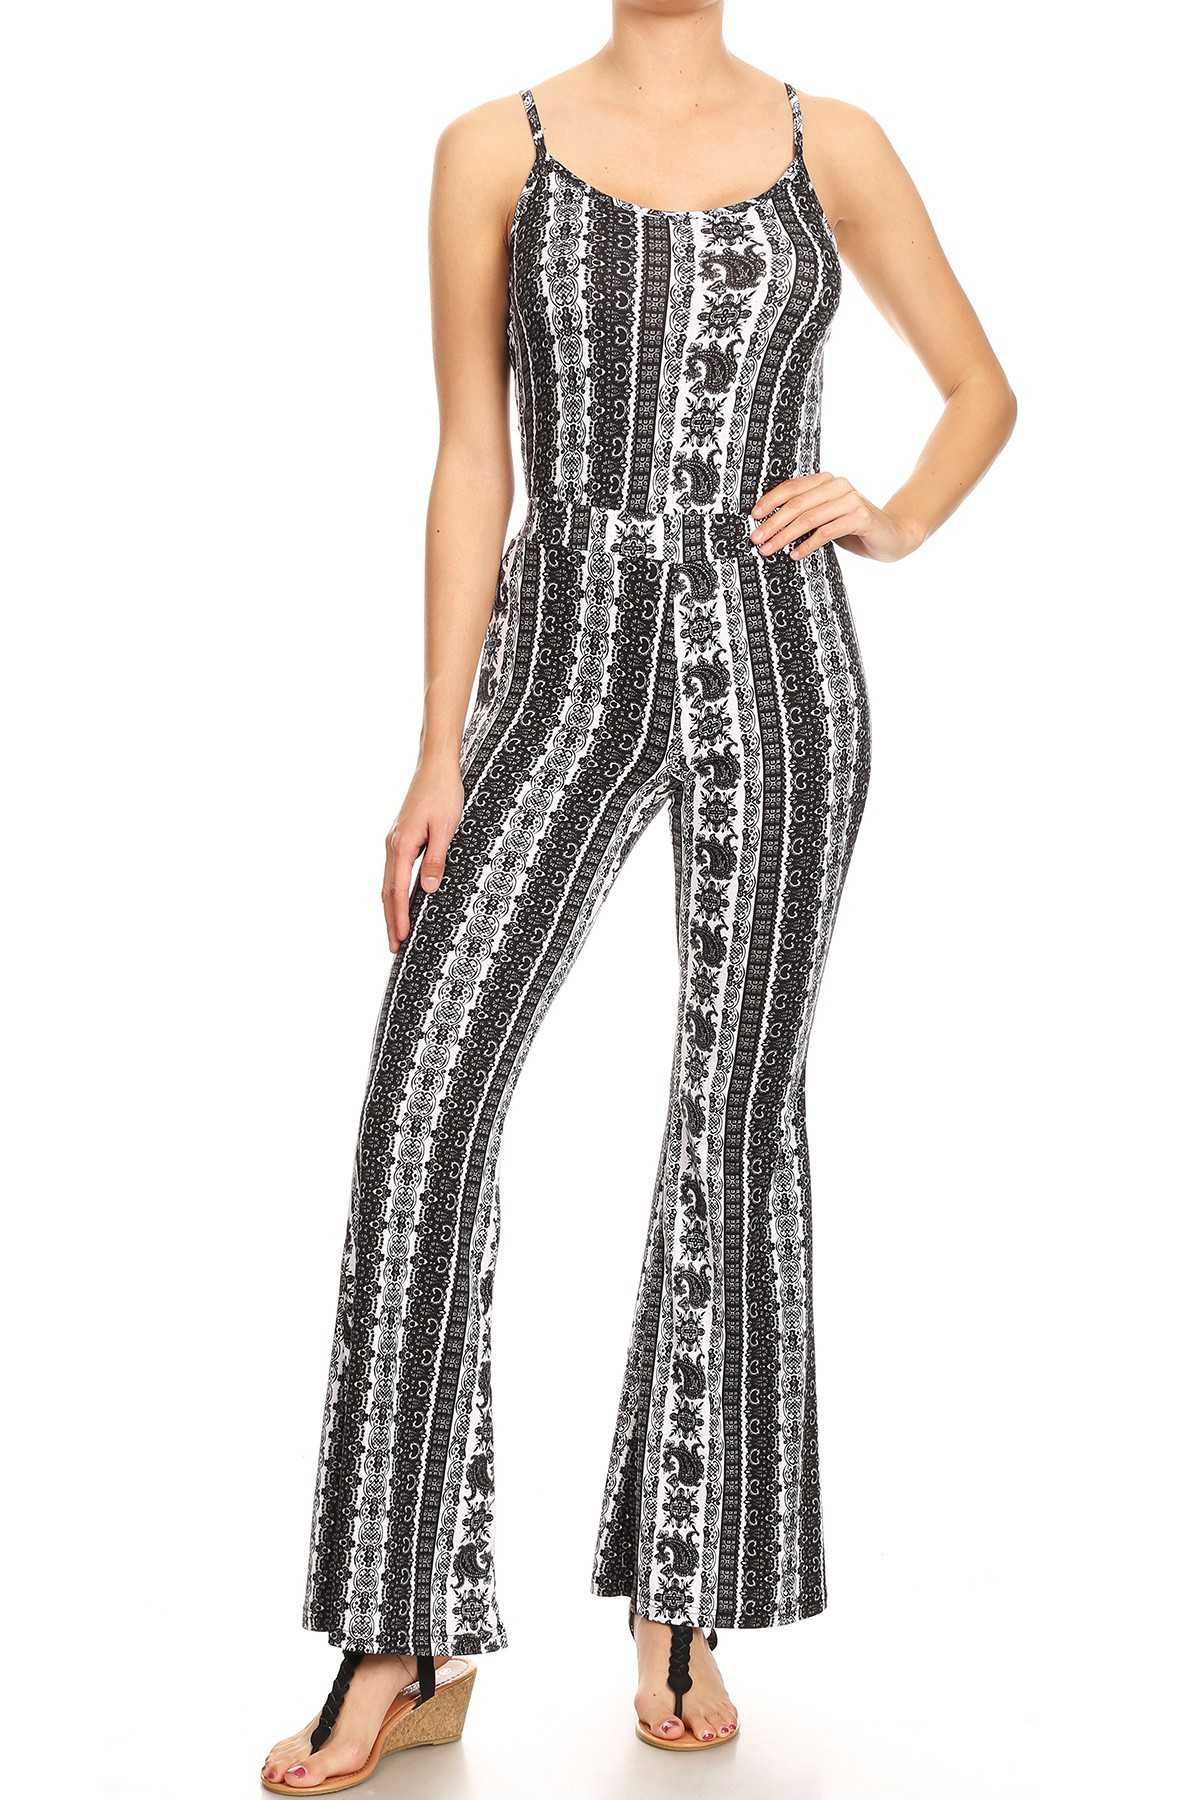 BLACK/WHITE BOHO PRINT FLARE JUMPSUIT WITH CAMI TOP#8JPS01-BH04